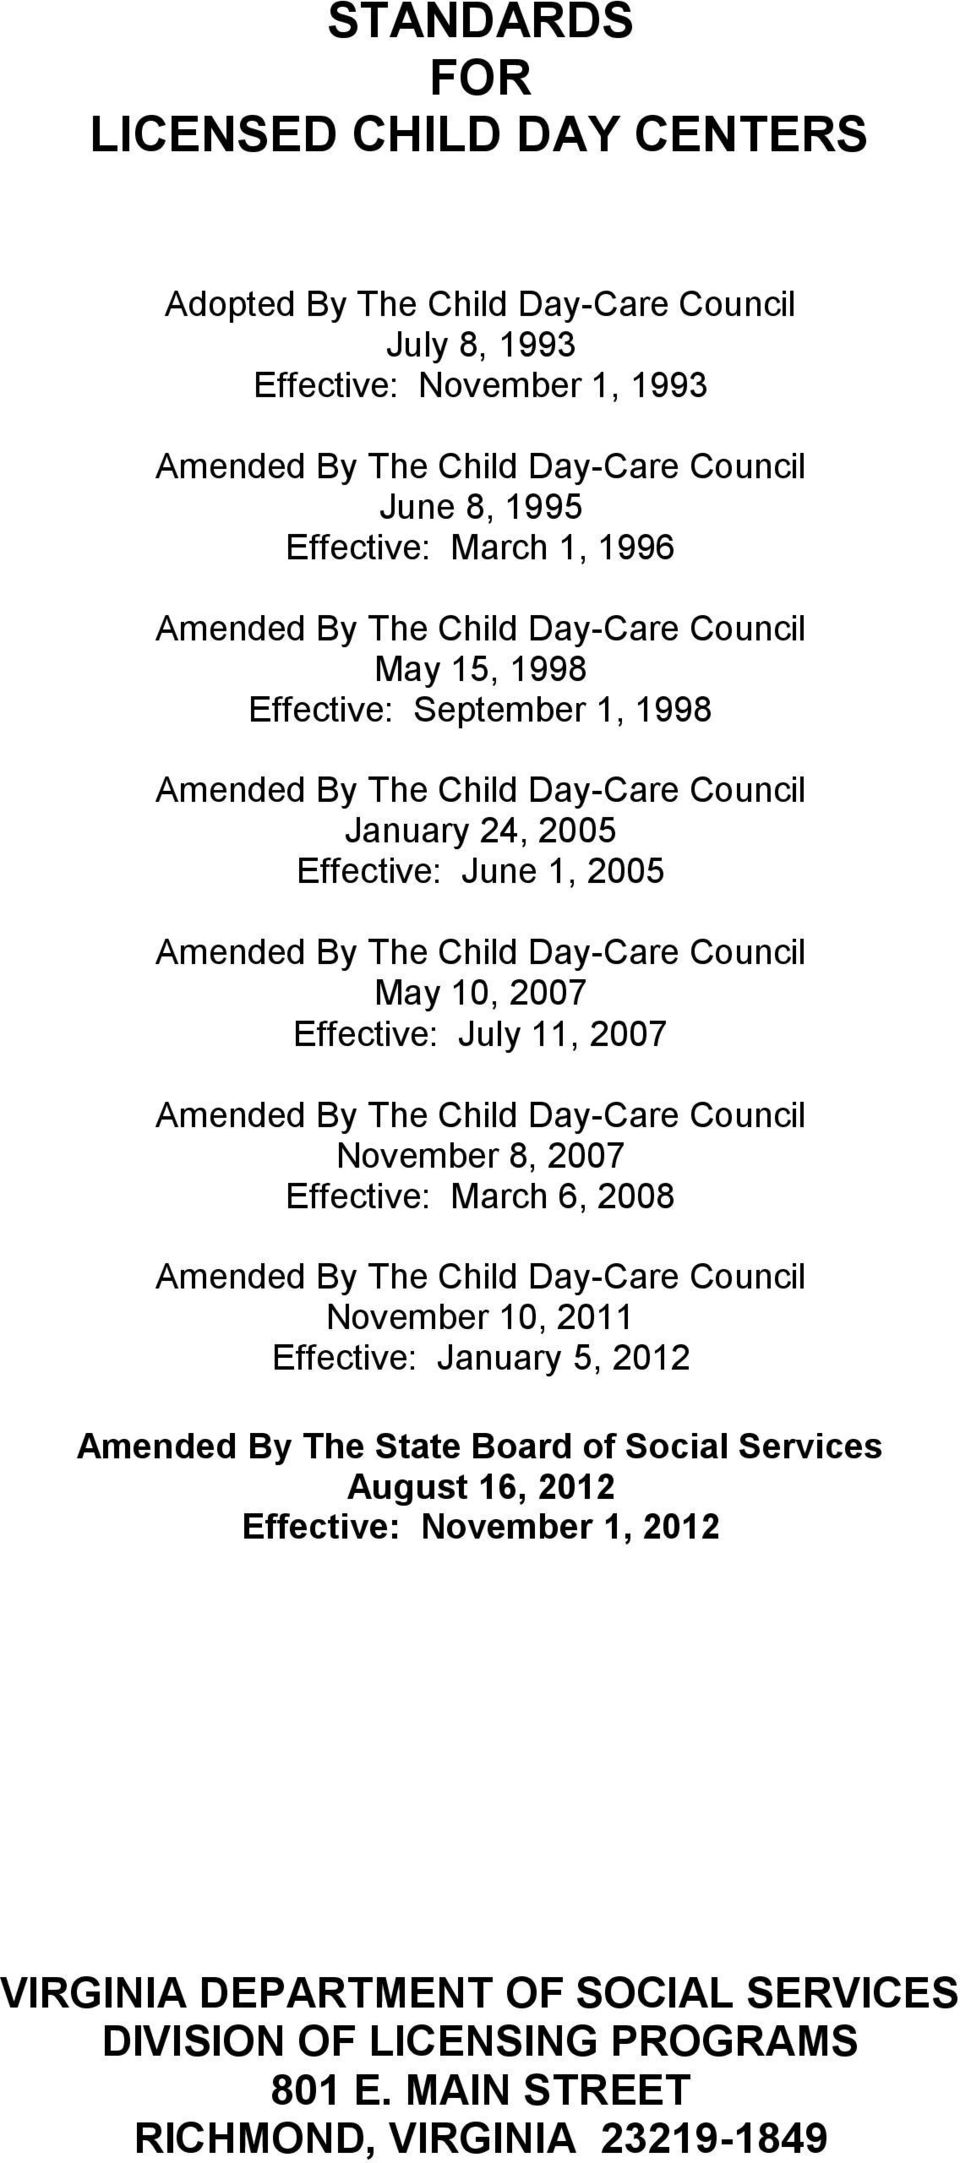 May 10, 2007 Effective: July 11, 2007 Amended By The Child Day-Care Council November 8, 2007 Effective: March 6, 2008 Amended By The Child Day-Care Council November 10, 2011 Effective: January 5,